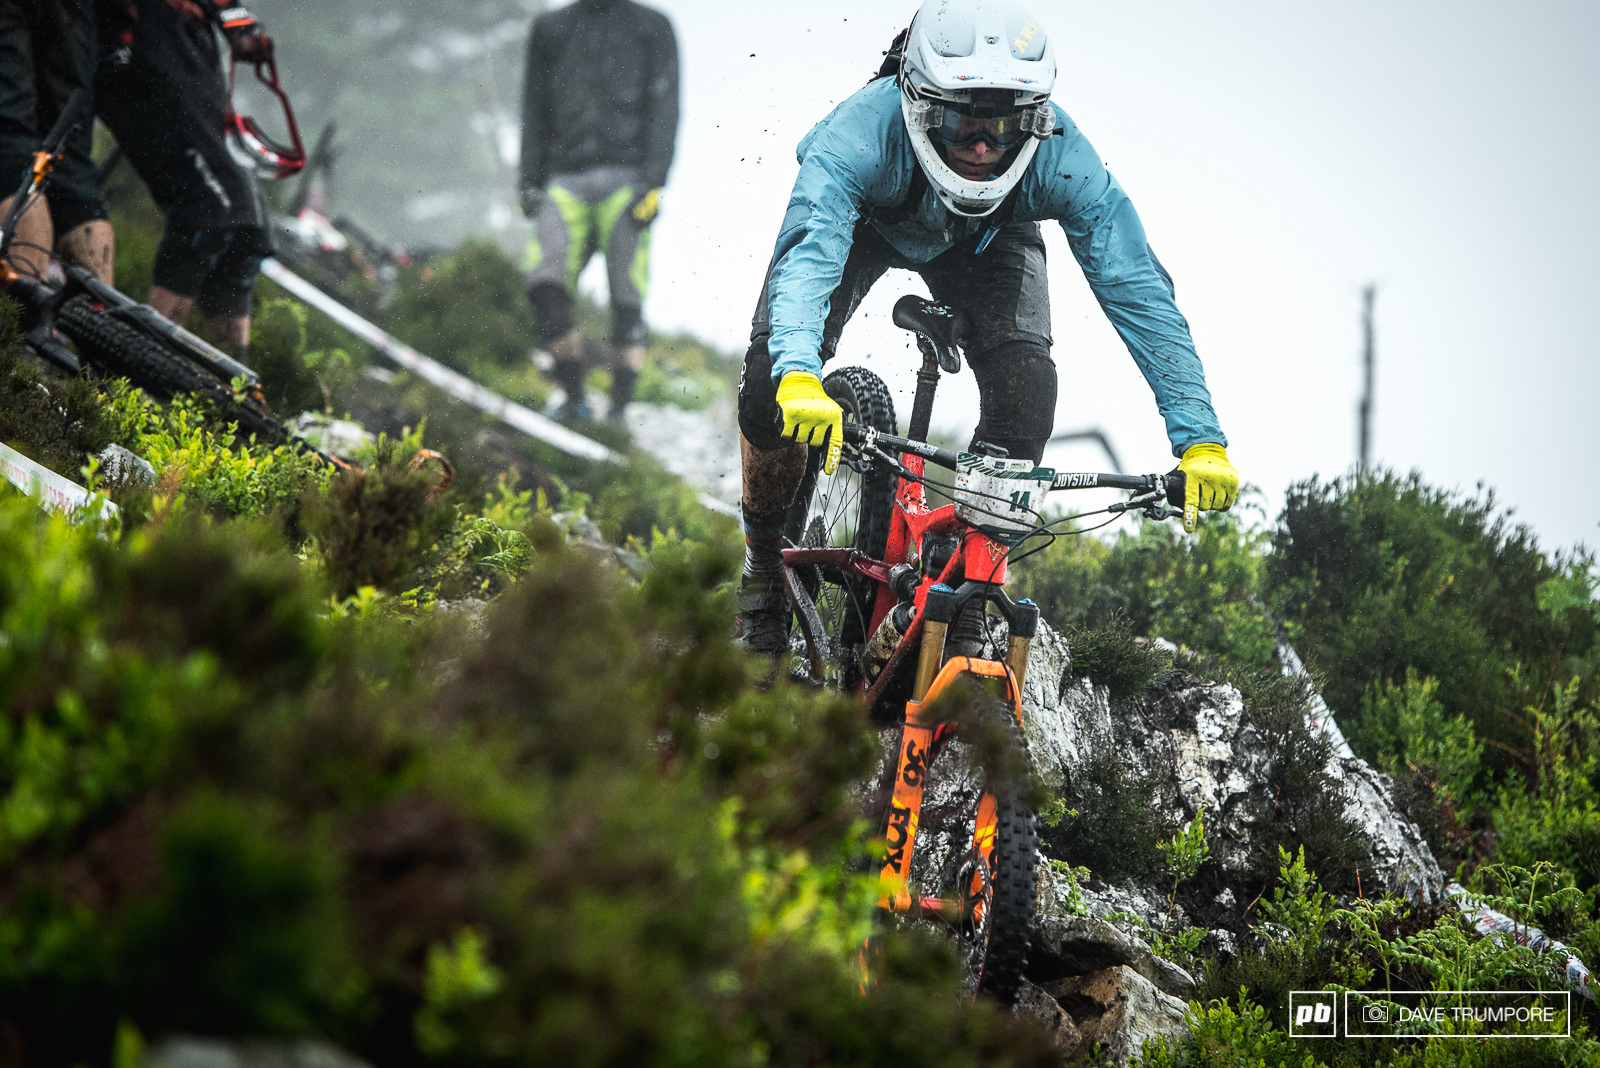 Robin Wallner dodging rain and fallen riders all the way down Stage 5.